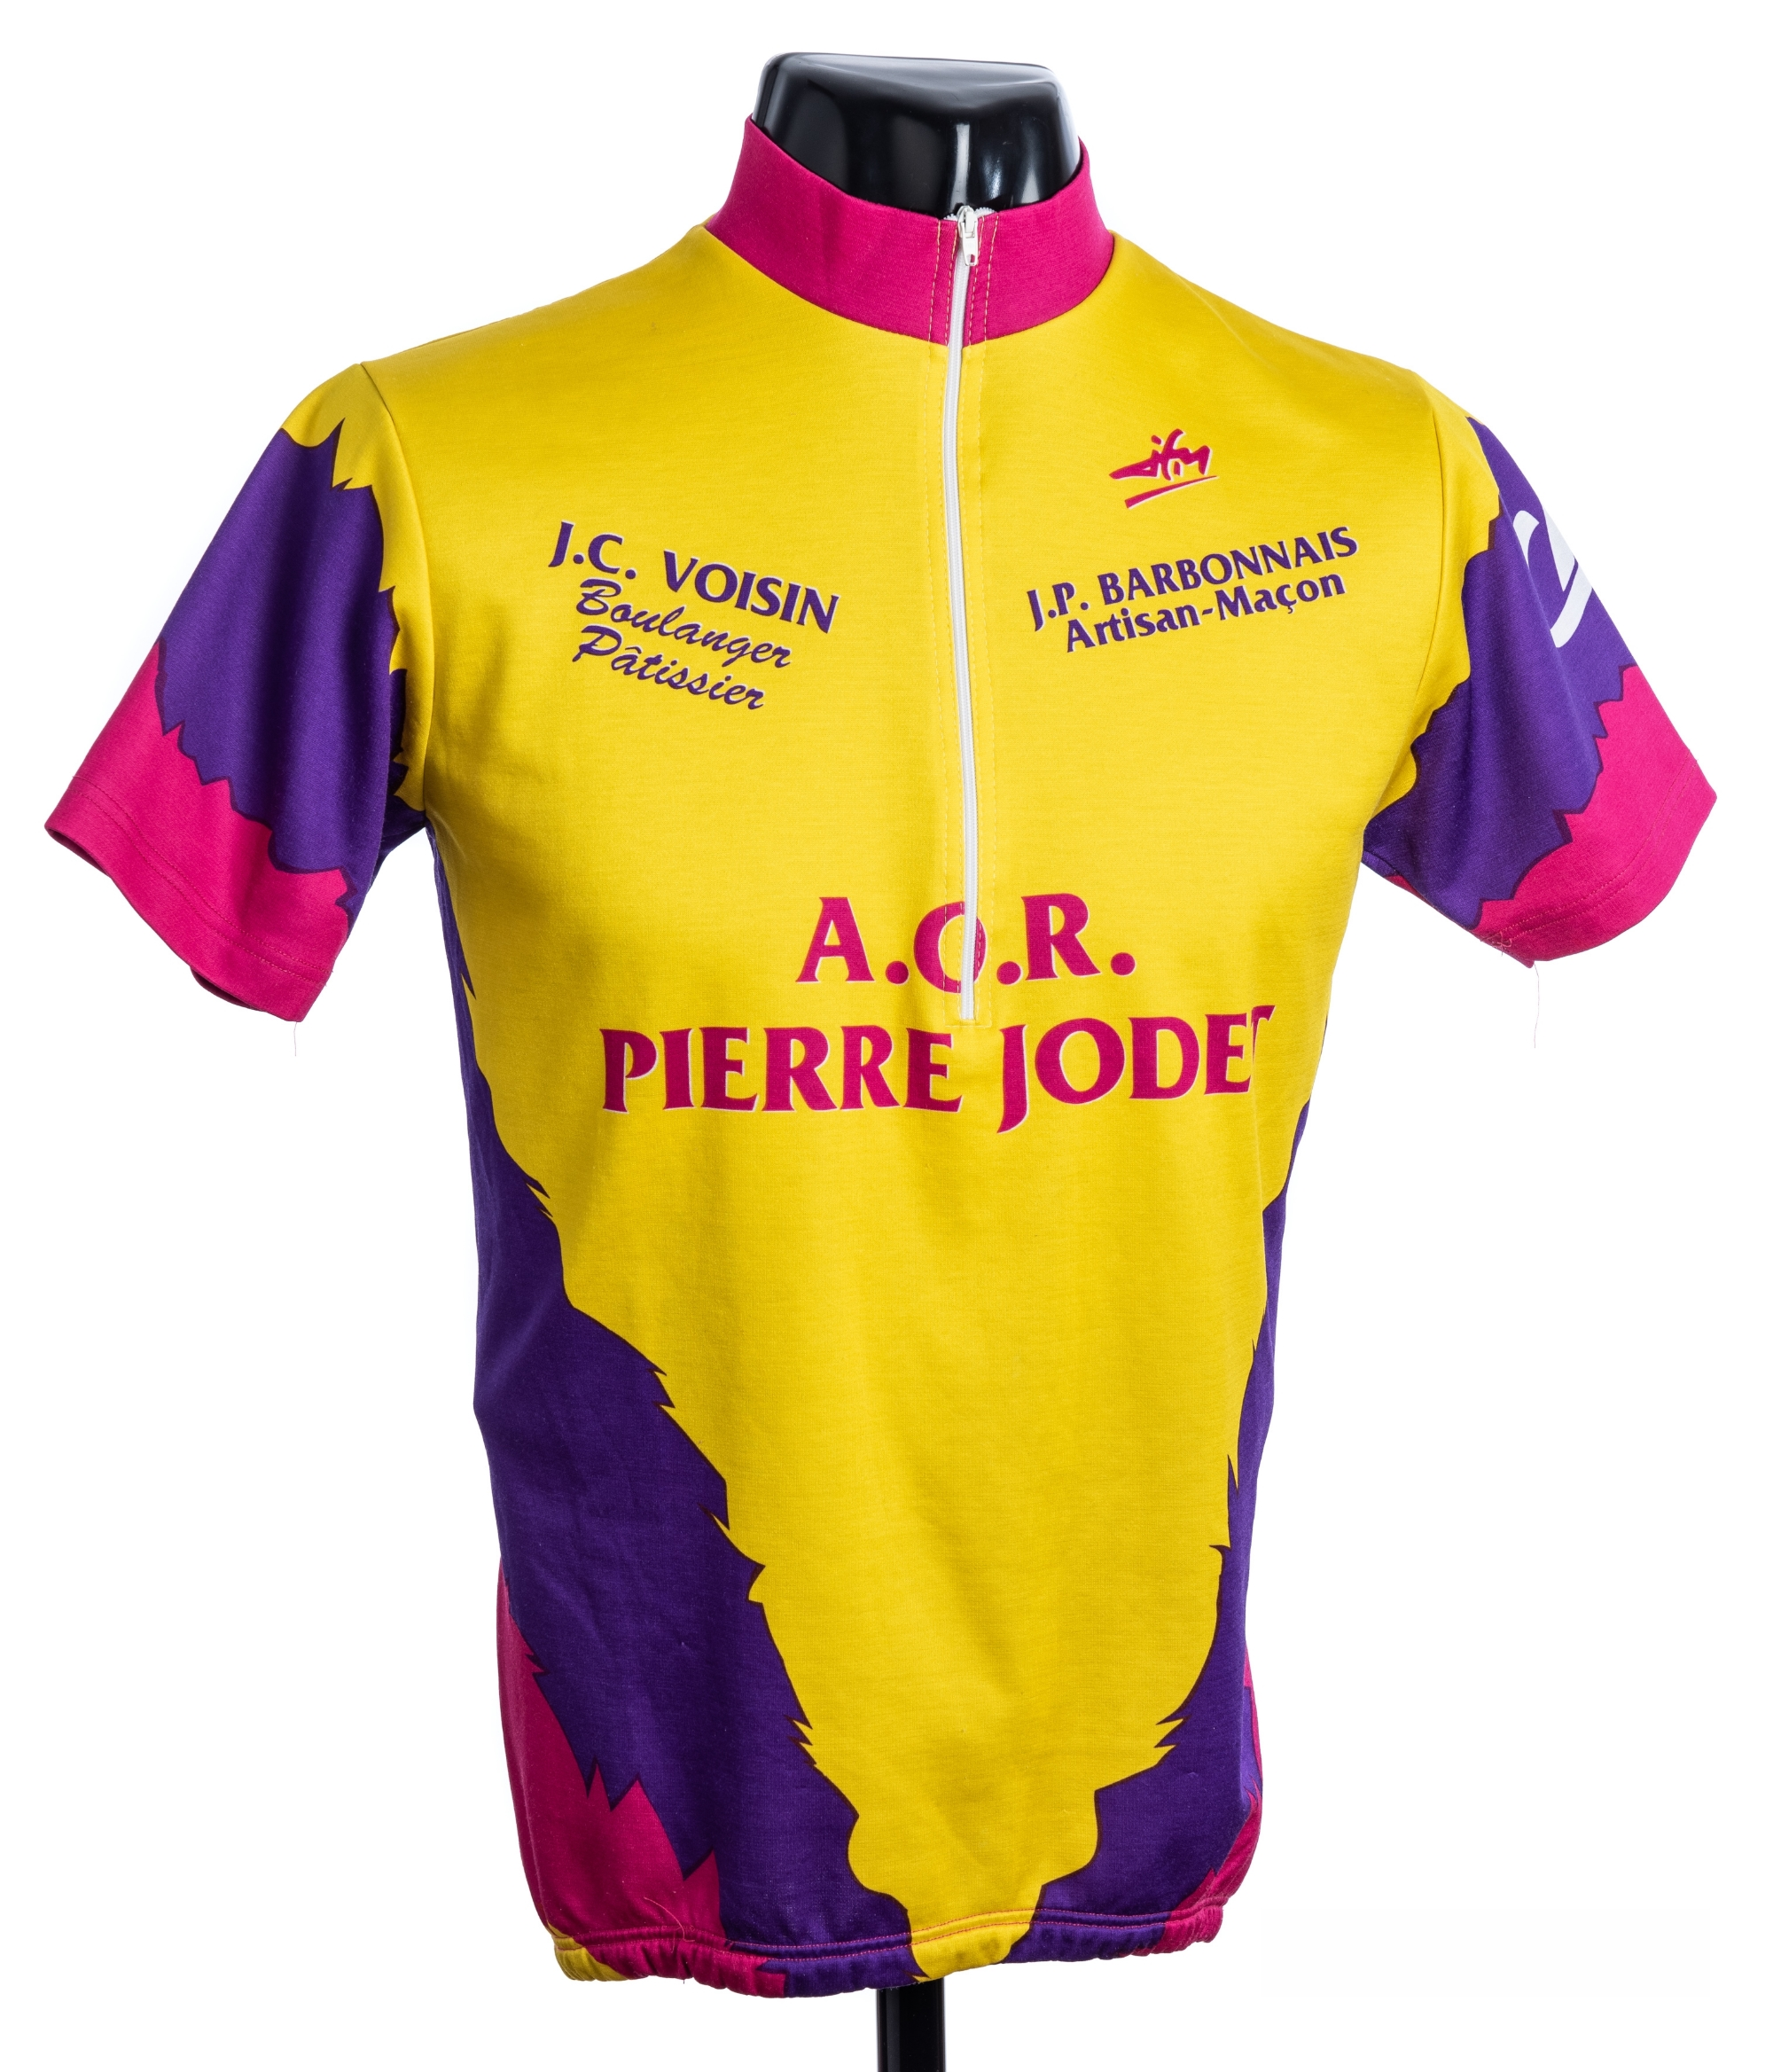 1982 yellow, pink and purple Cycling race jersey to celebrate the birthday of French cycle racer - Image 3 of 4